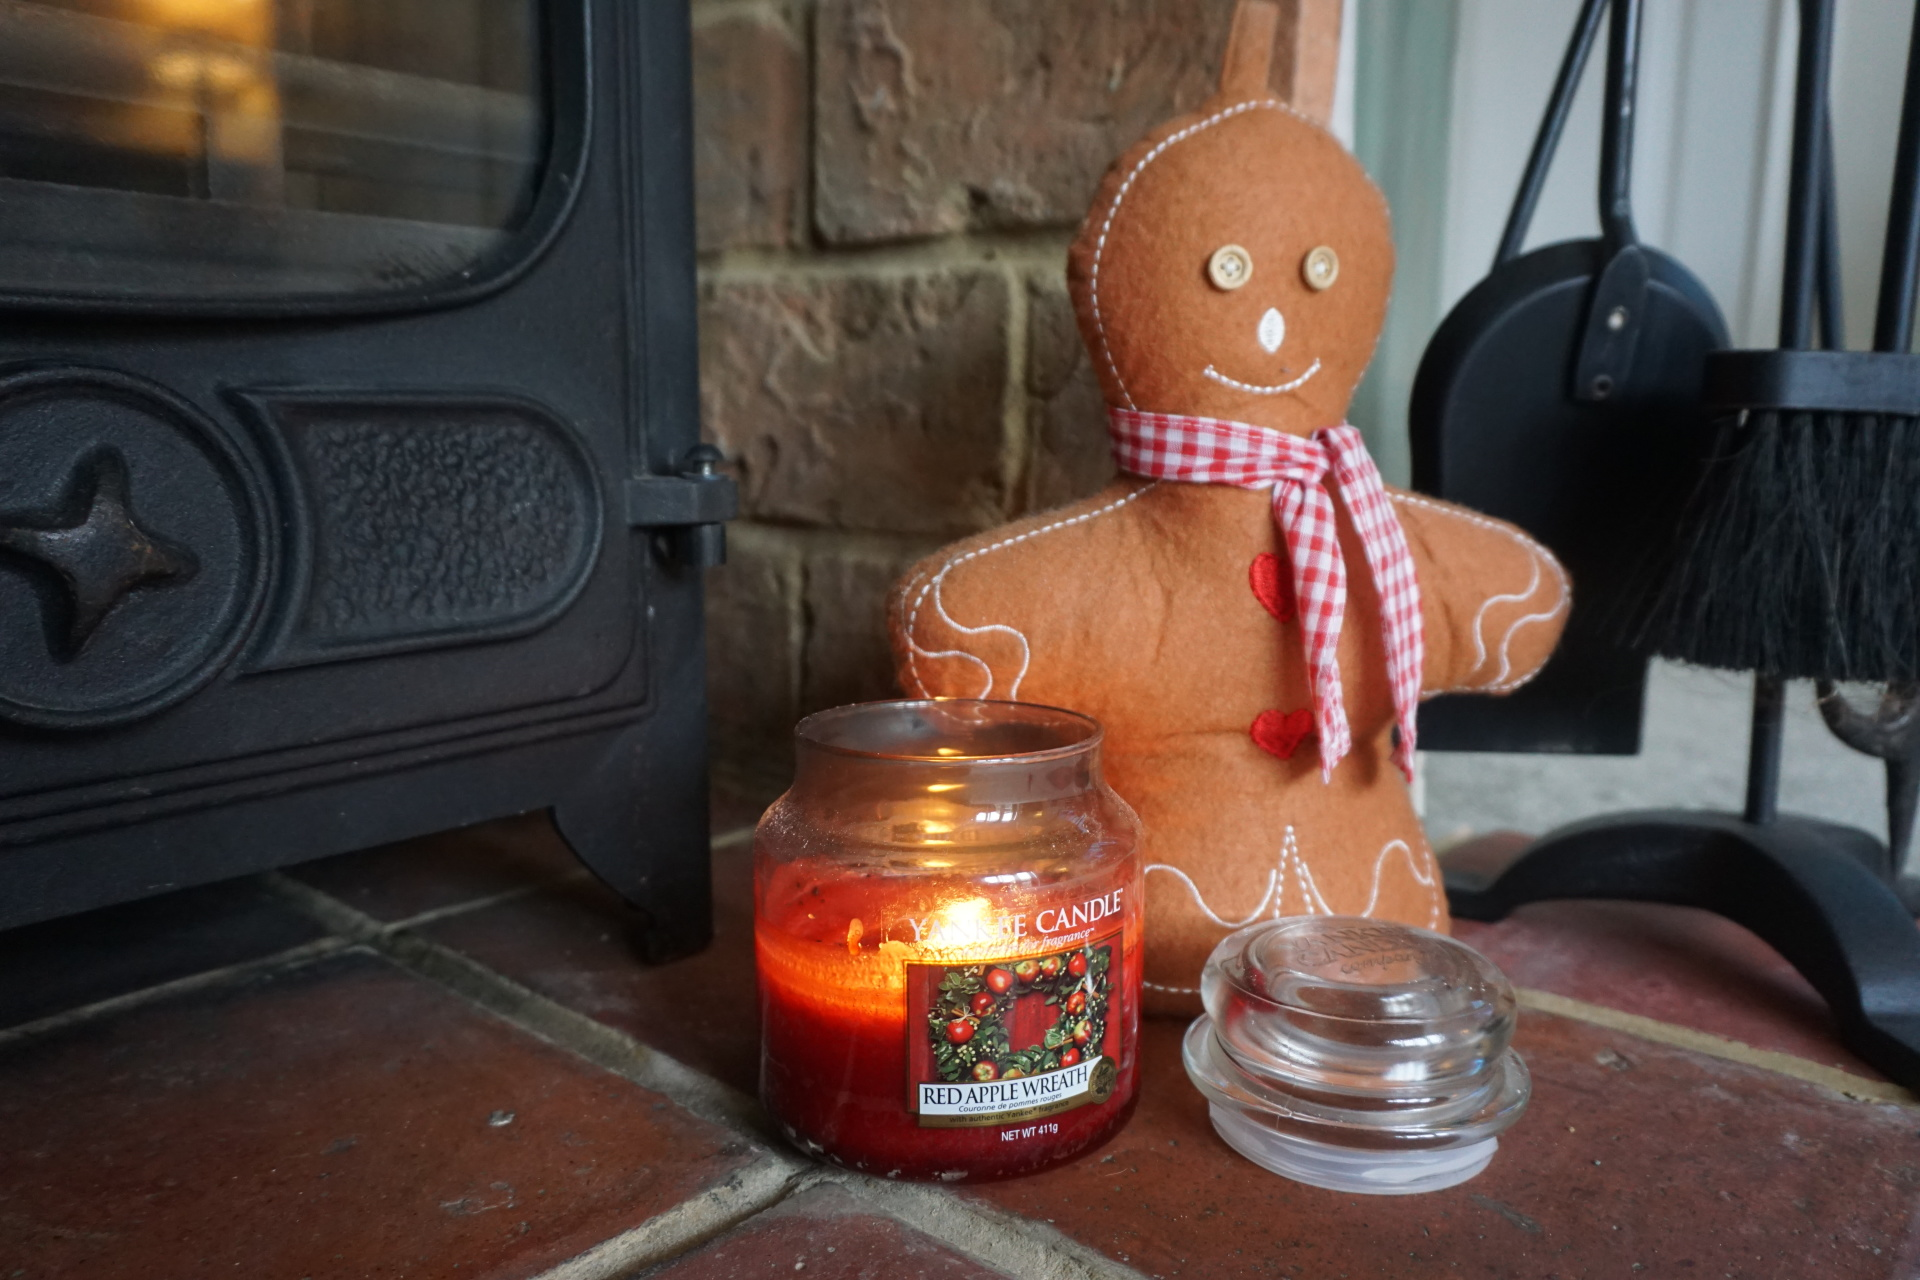 My top picks - Christmas scented candles